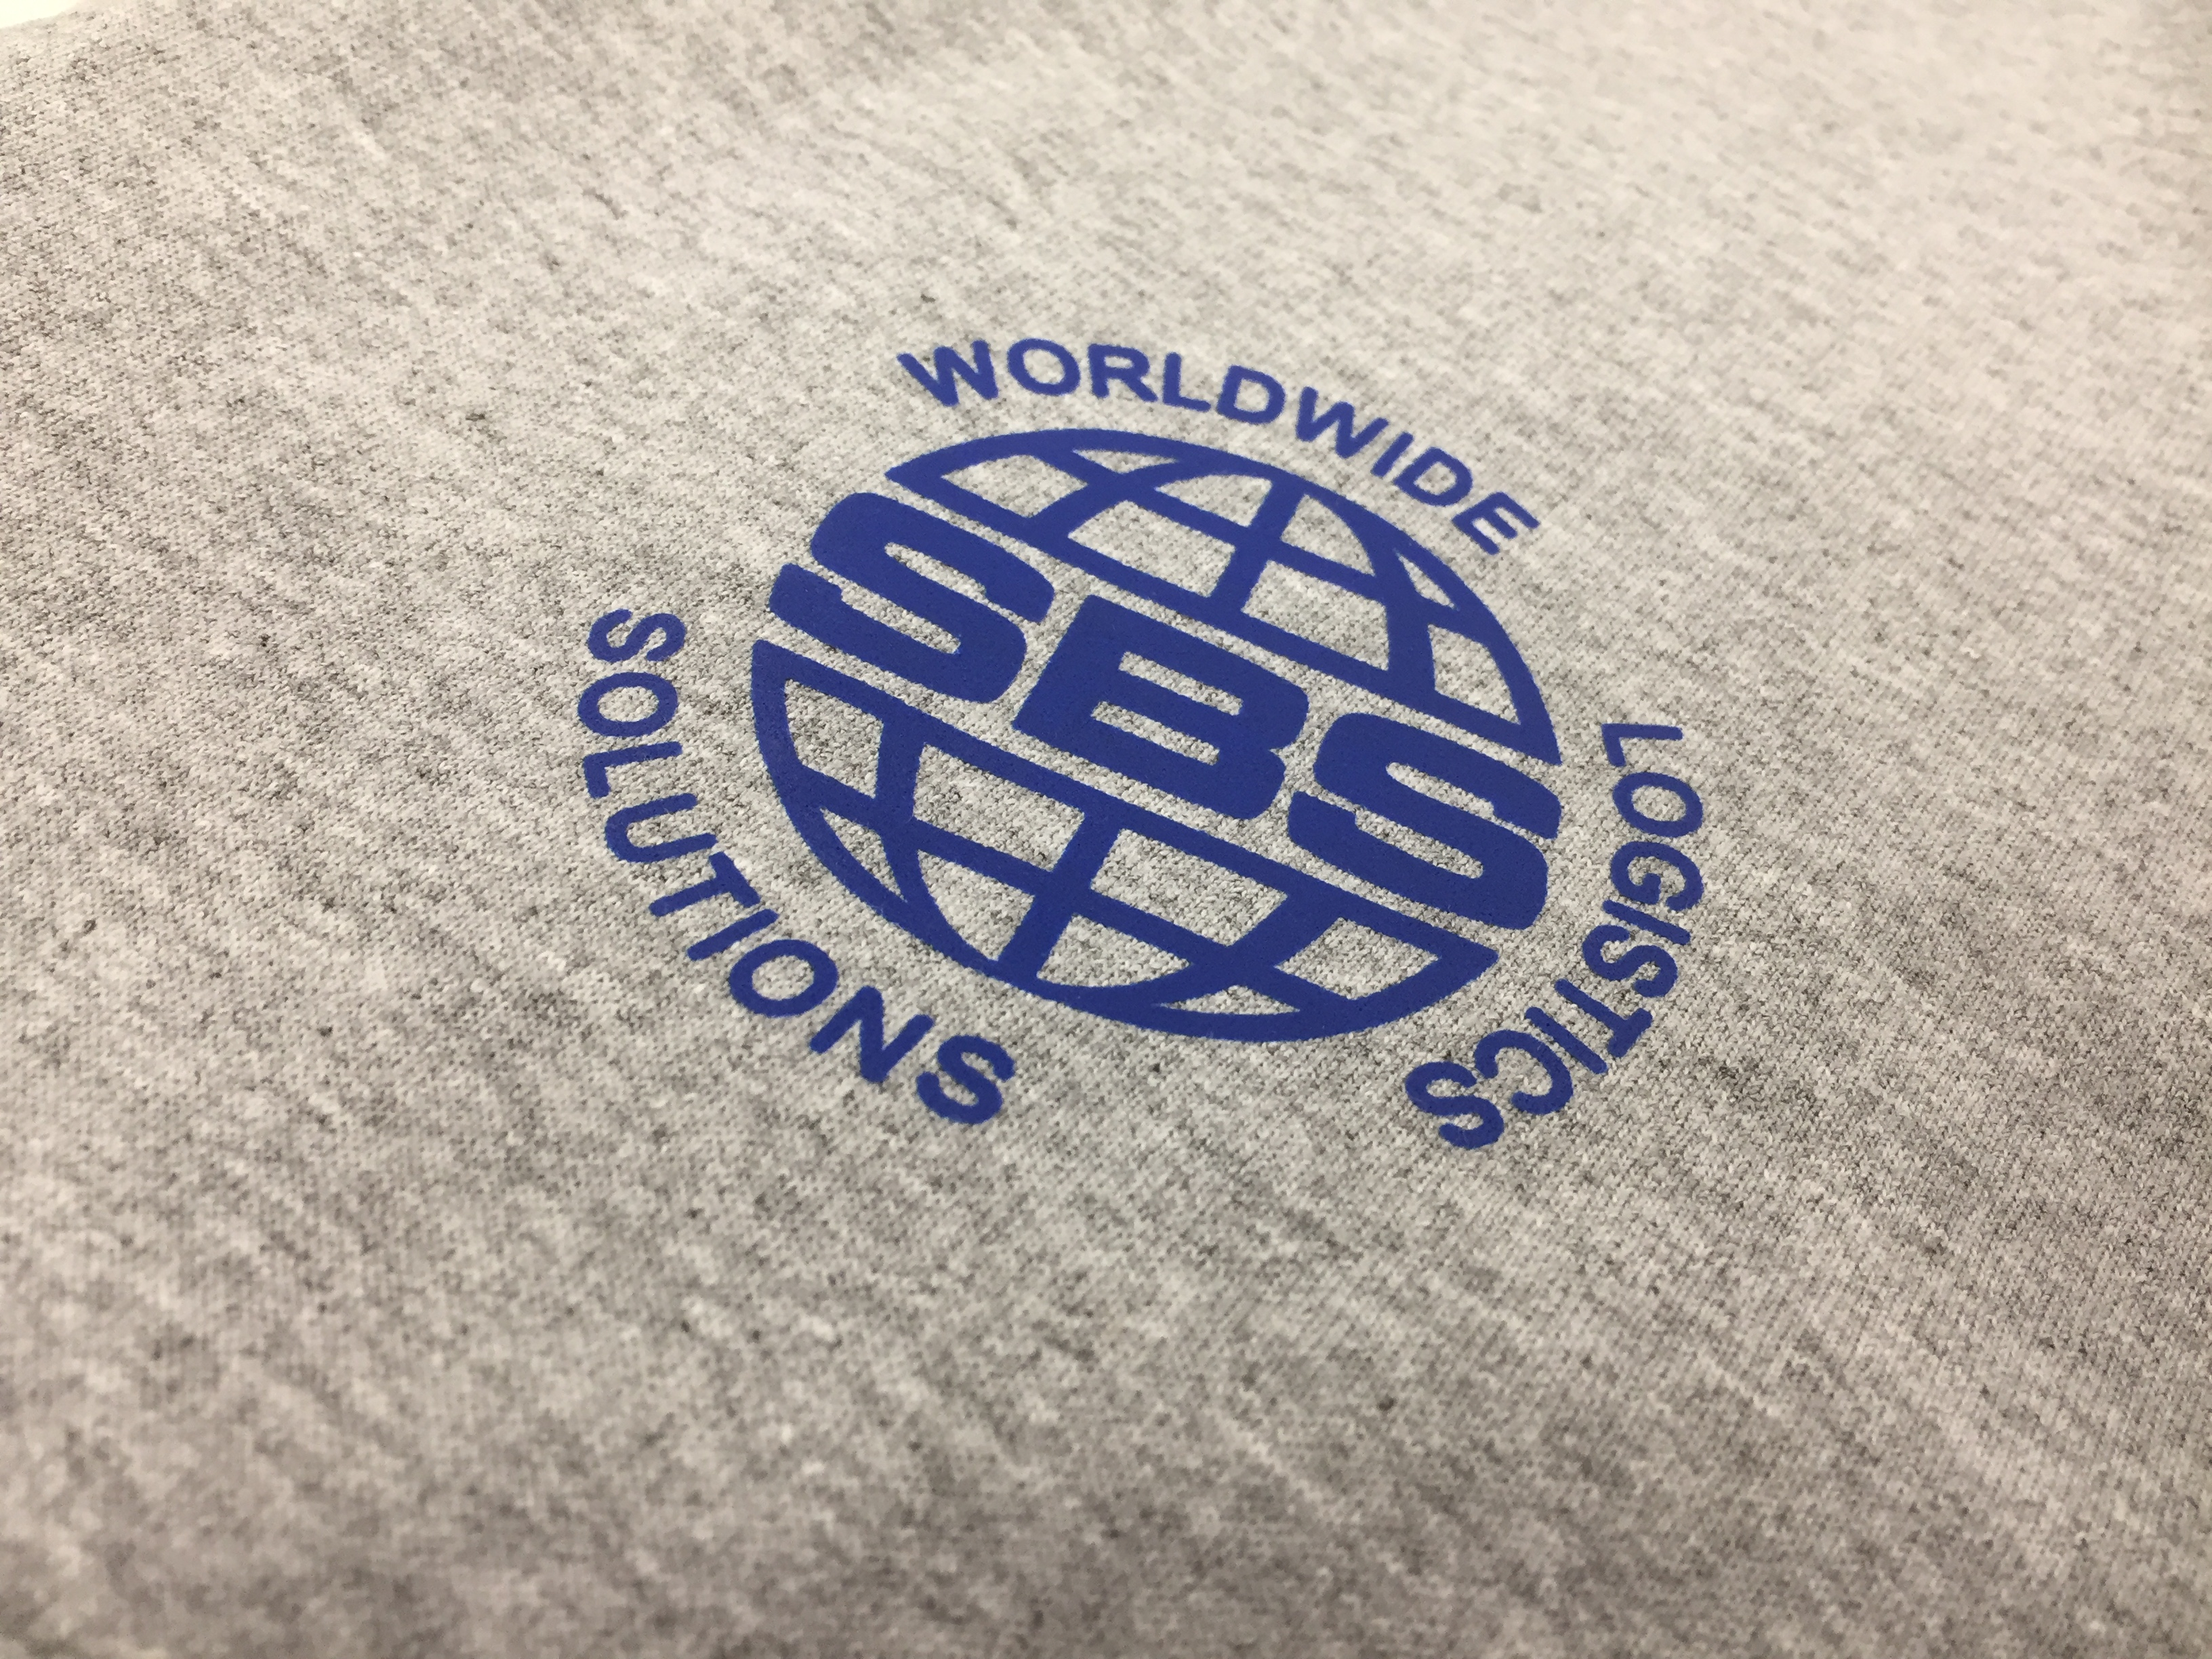 From purchasing apparel to handling shipping we do it all for you - From Purchasing Apparel Stock To Handling Shipping We Do It All For You That Leaves You With More Time To Focus On Bragging About Your Brand